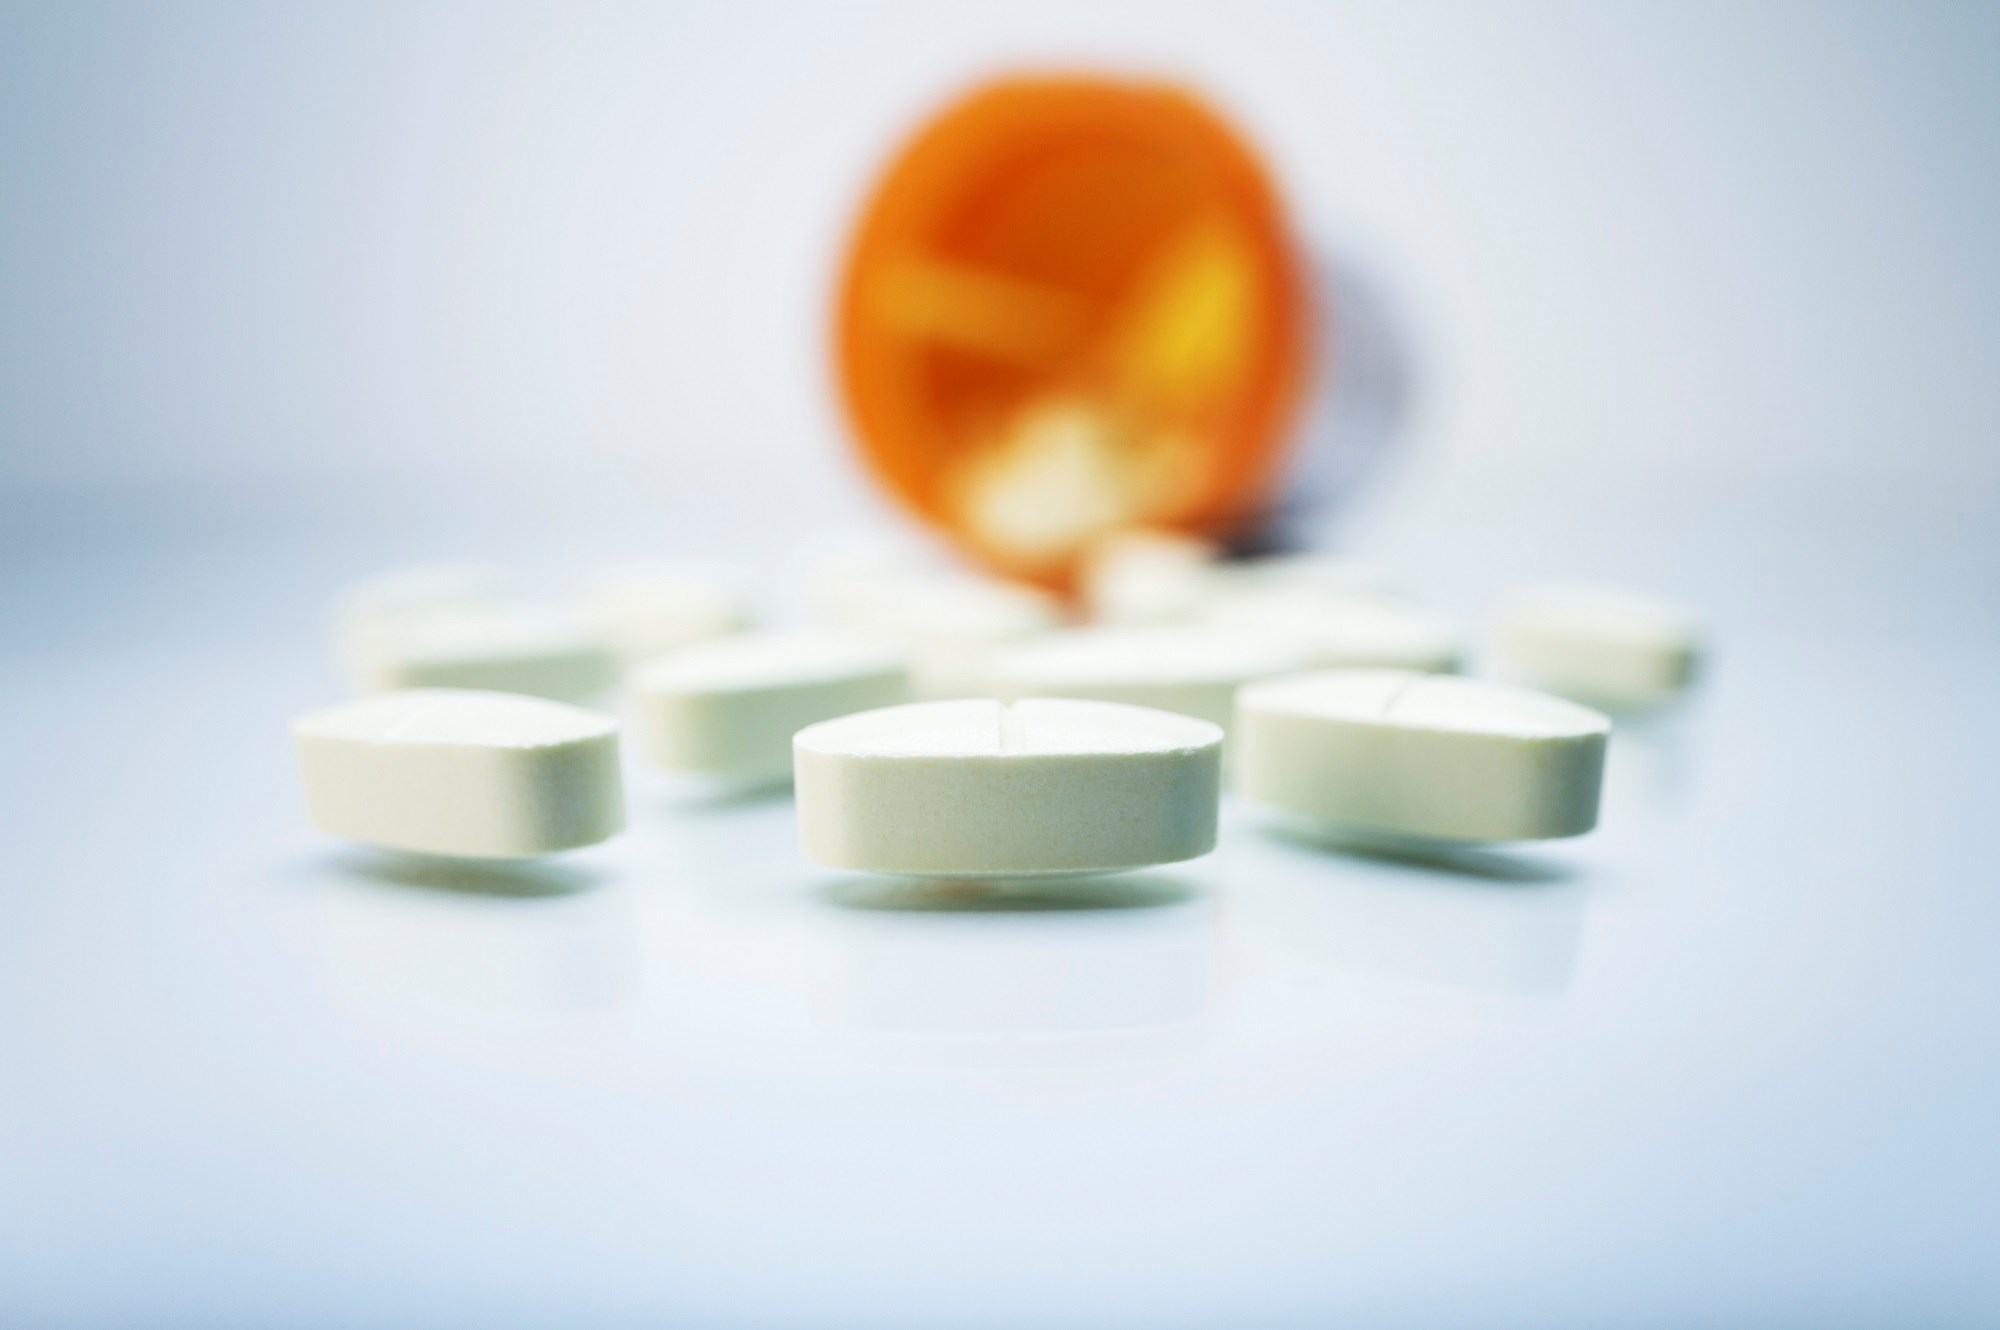 FDA Upscheduling of Hydrocodone Places Burden on APRNs